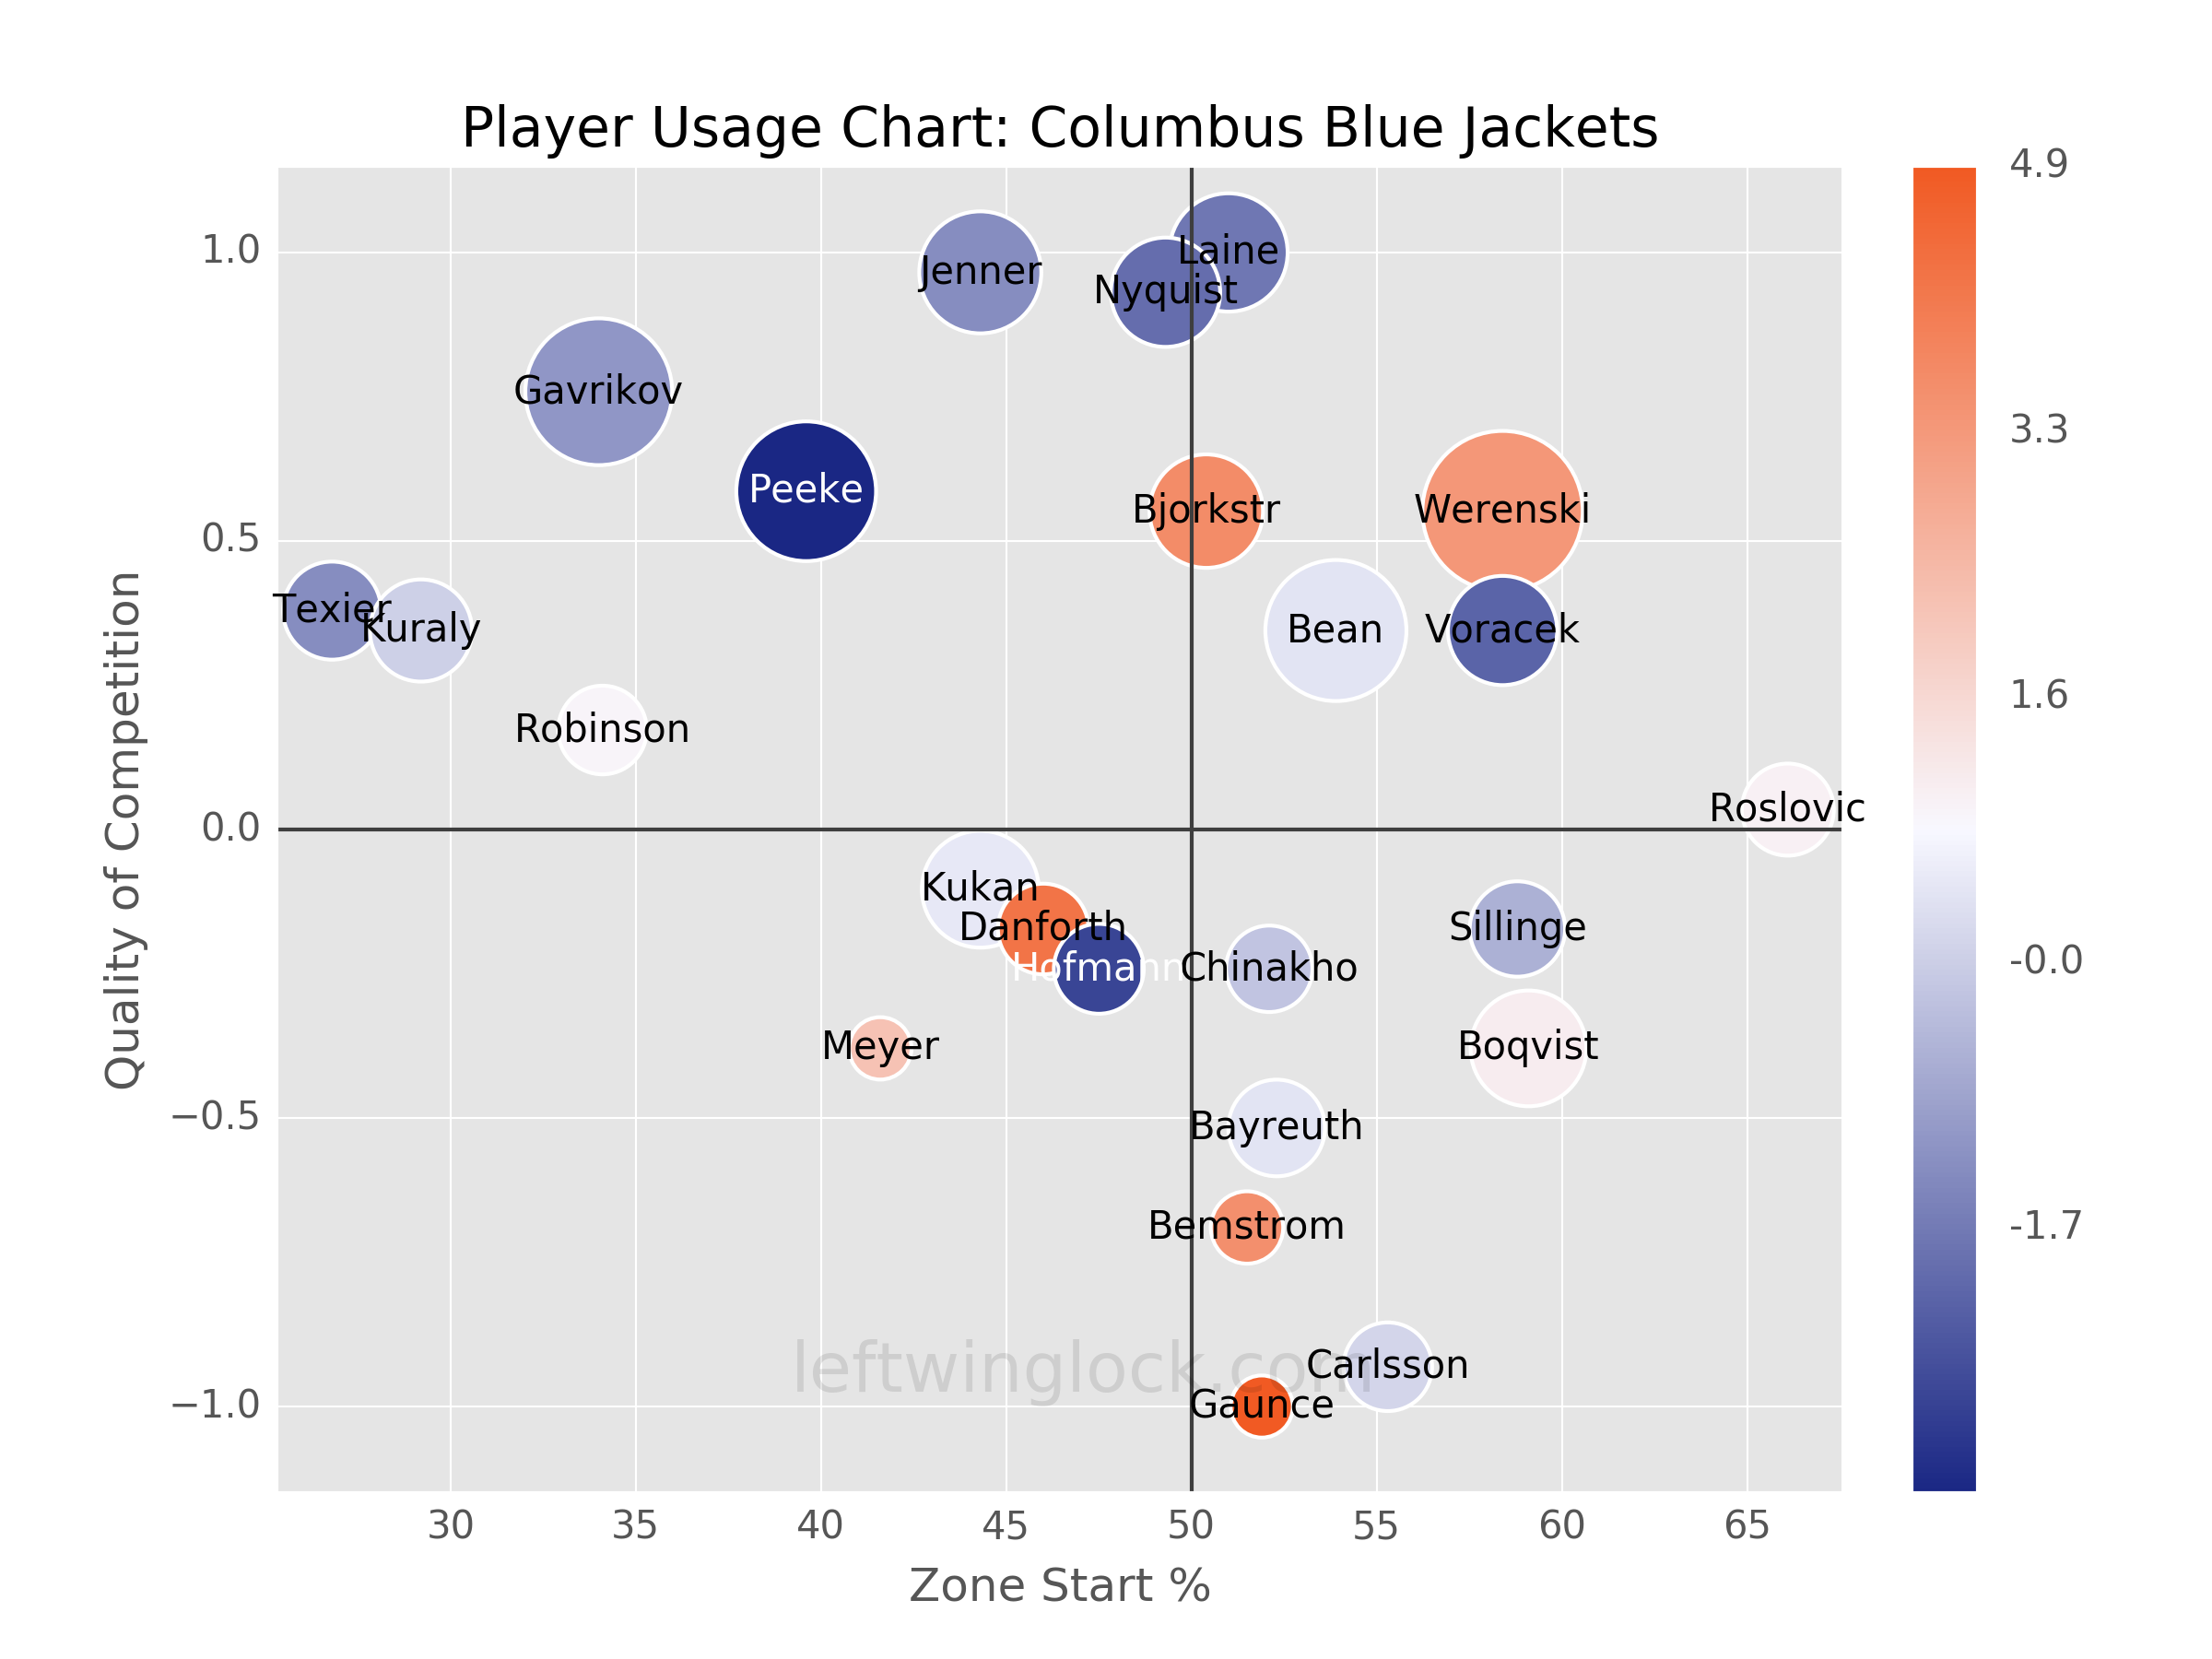 Columbus Blue Jackets Player Usage Chart